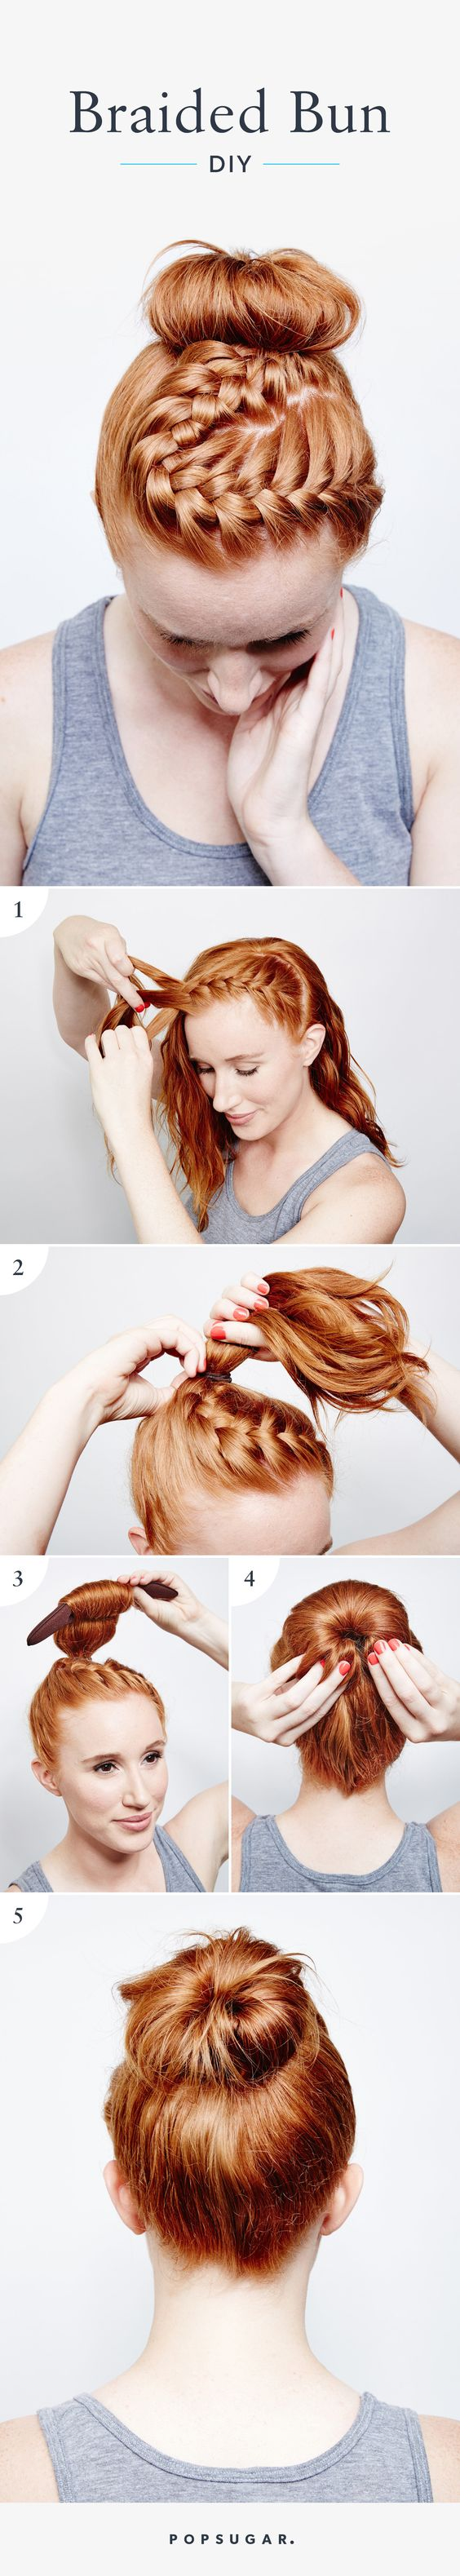 braided-top-bun-for-bright-hair via